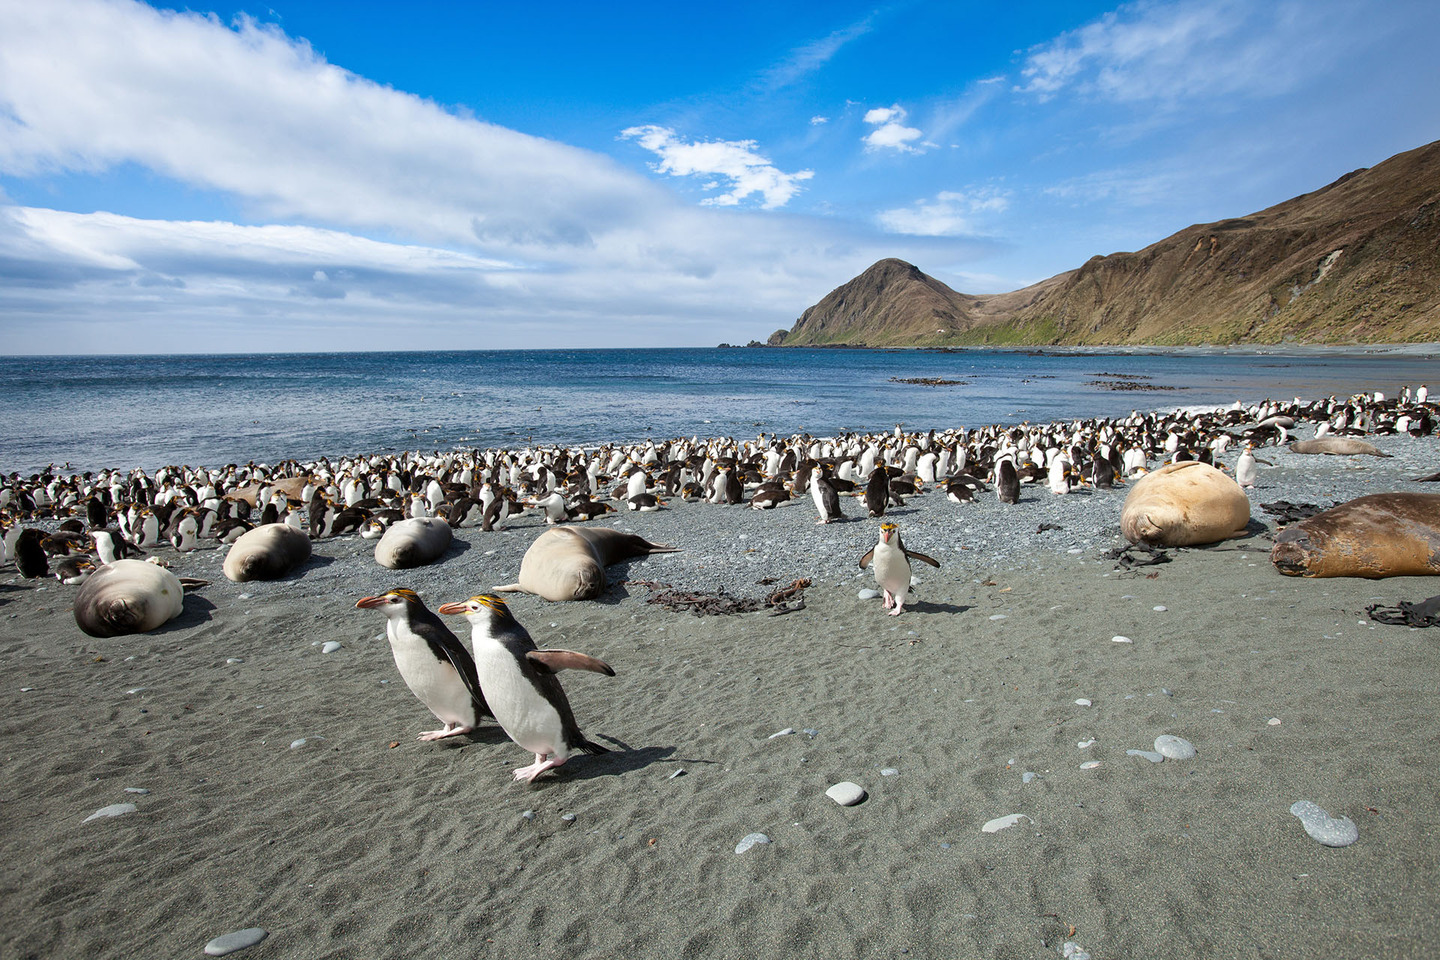 Royal penguins and Southern elephant seals at Sandy Bay on Macquarie Island